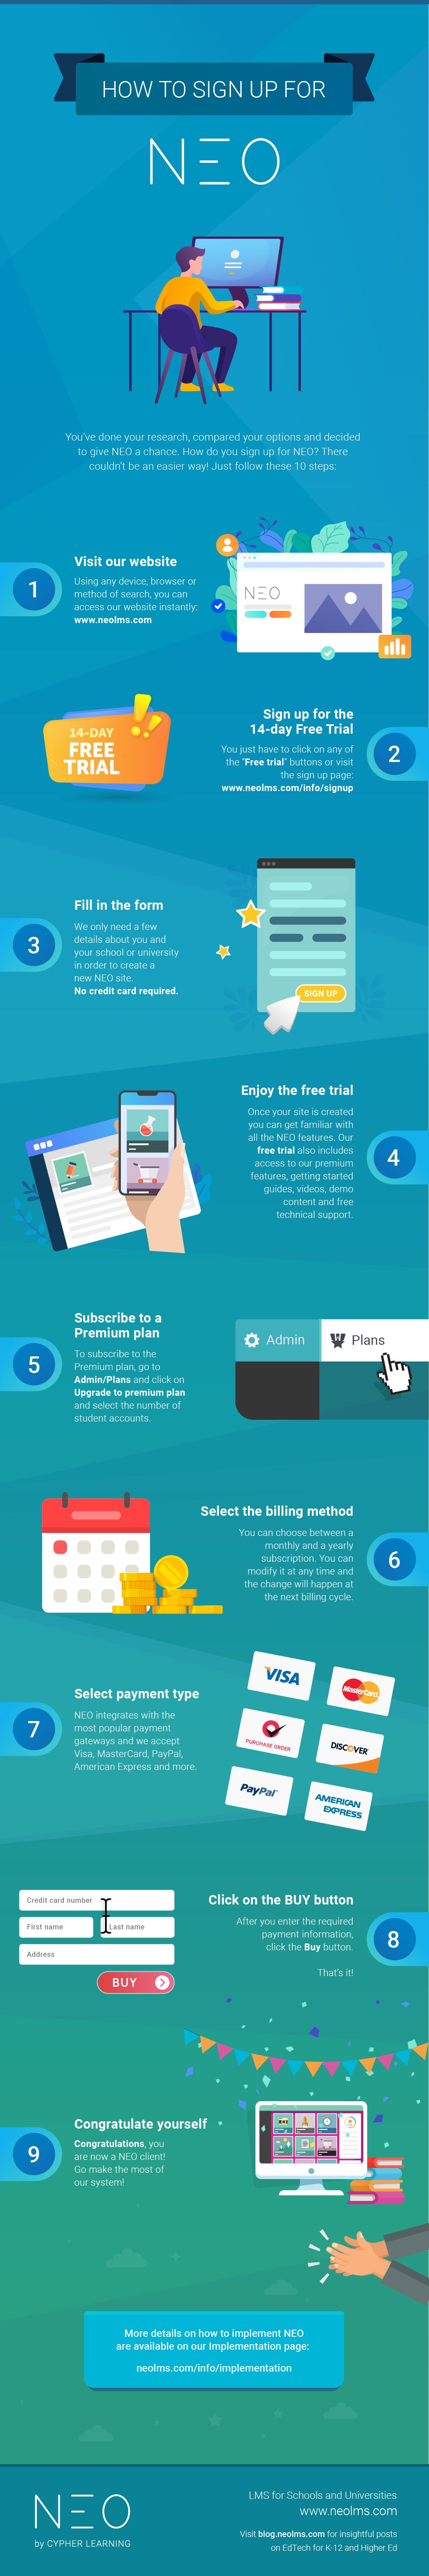 E-learning Infographic   How to Sign Up for NEO LMS